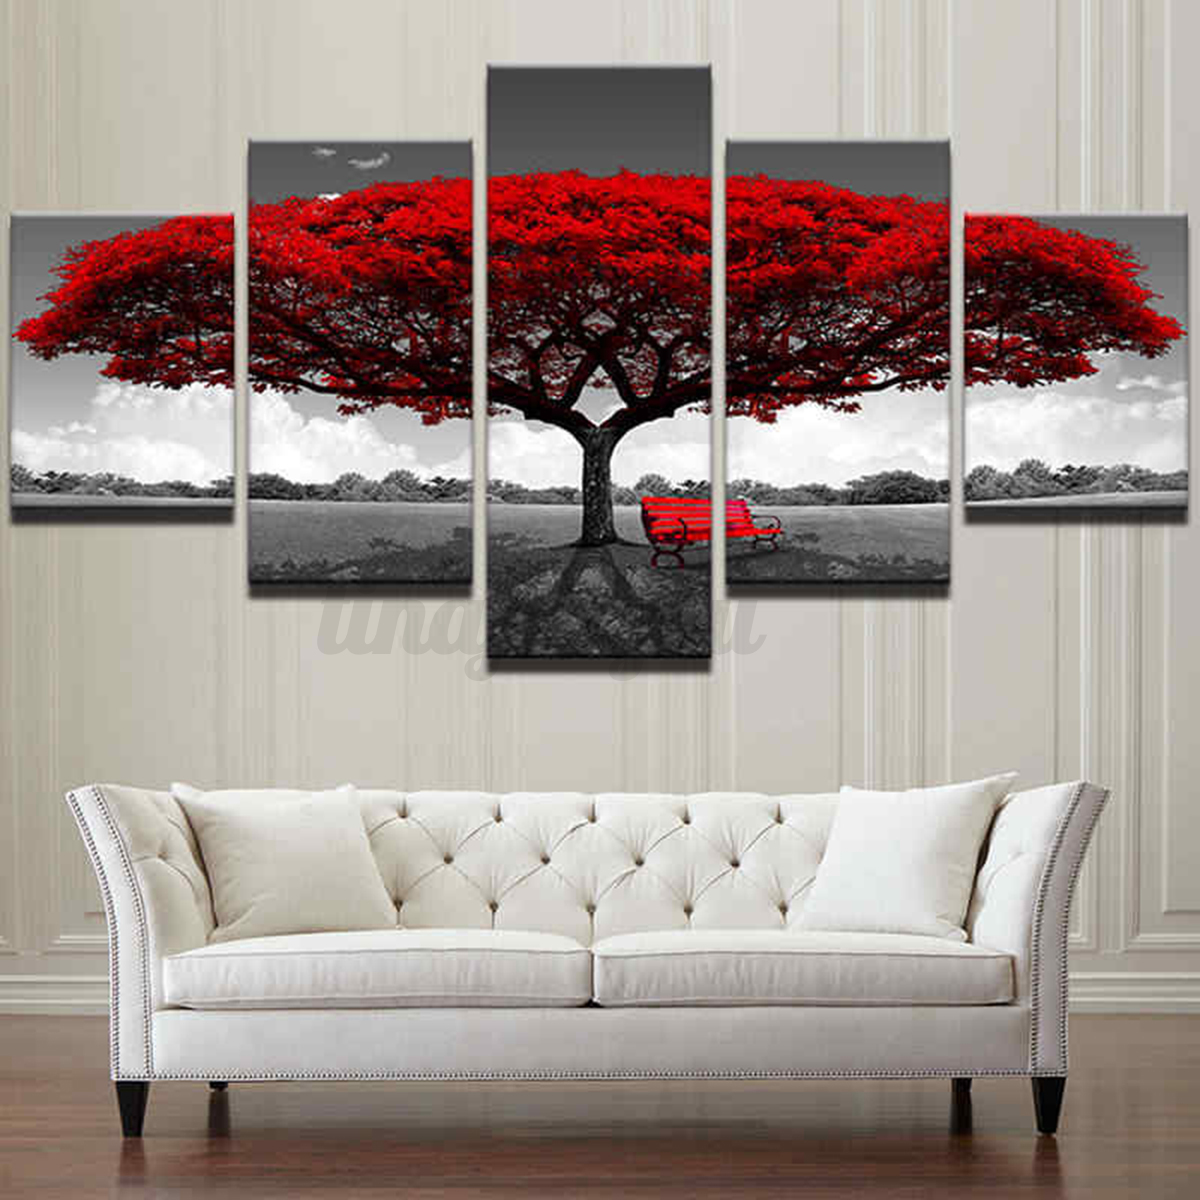 Home Decor Canvas Print Painting Wall Art Modern Red Tree Scenery Bench No Frame Ebay